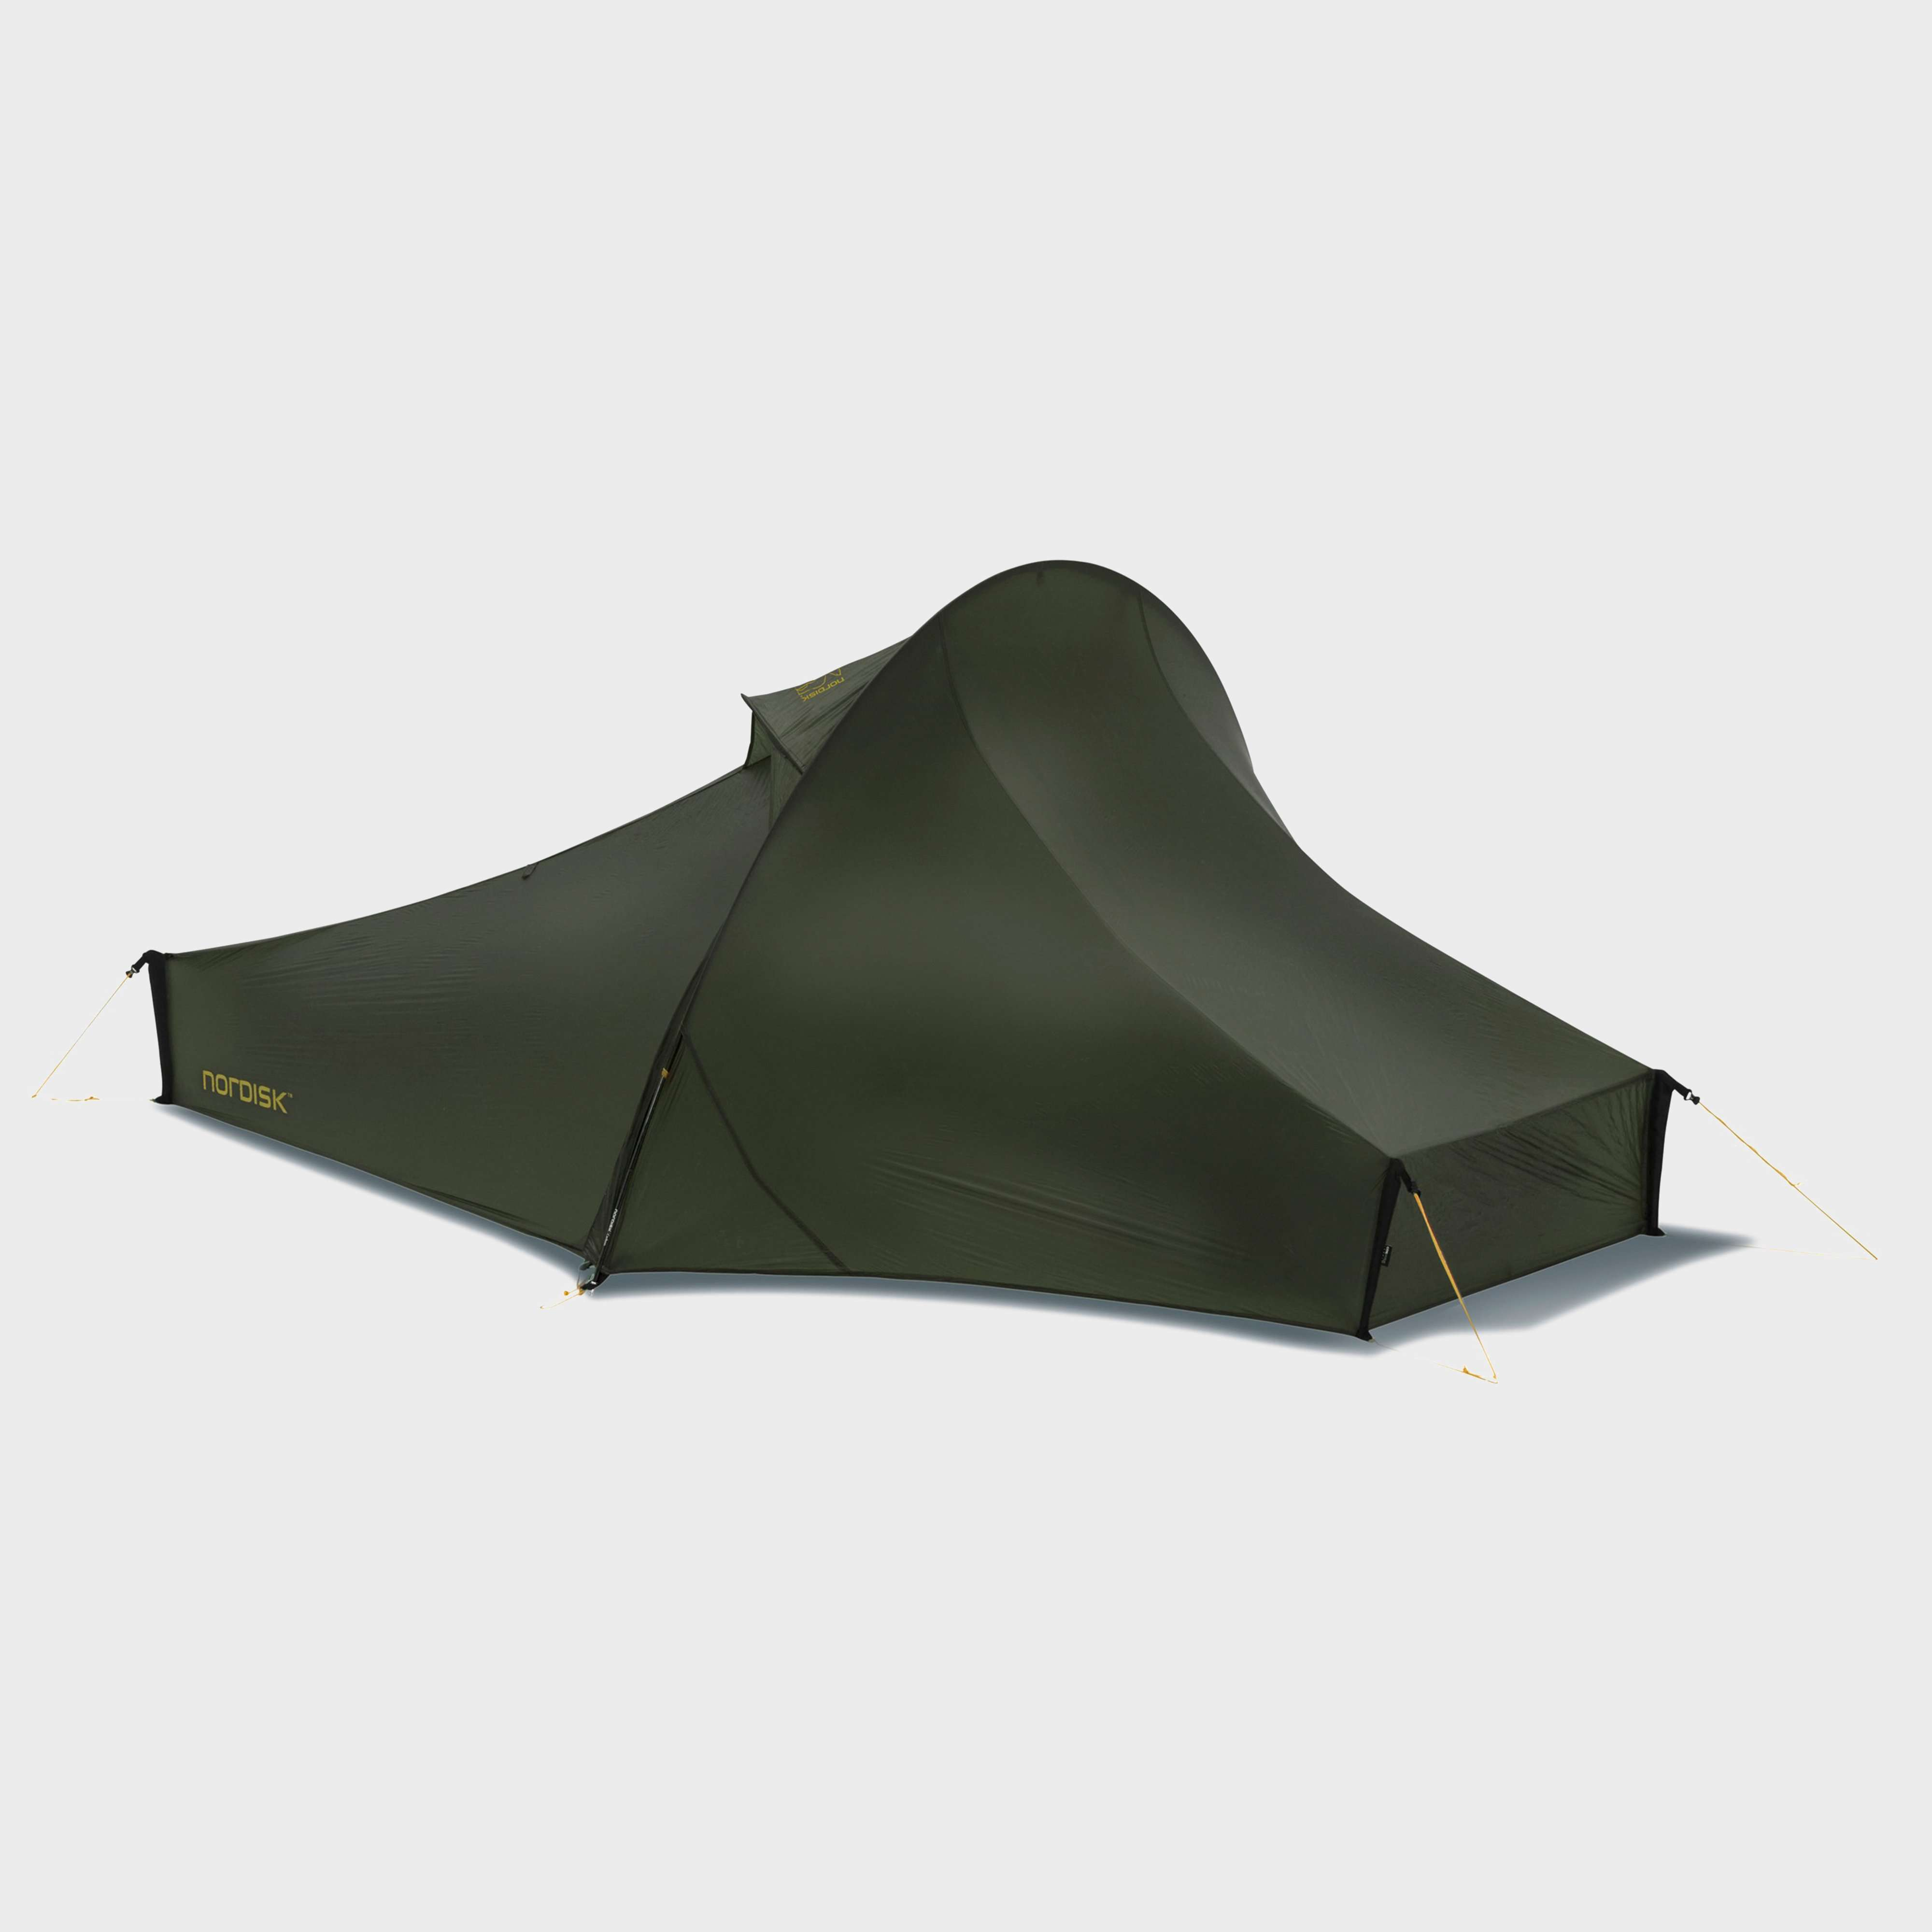 NORDISK Telemark 2 Light-Weight 2 Person Tent